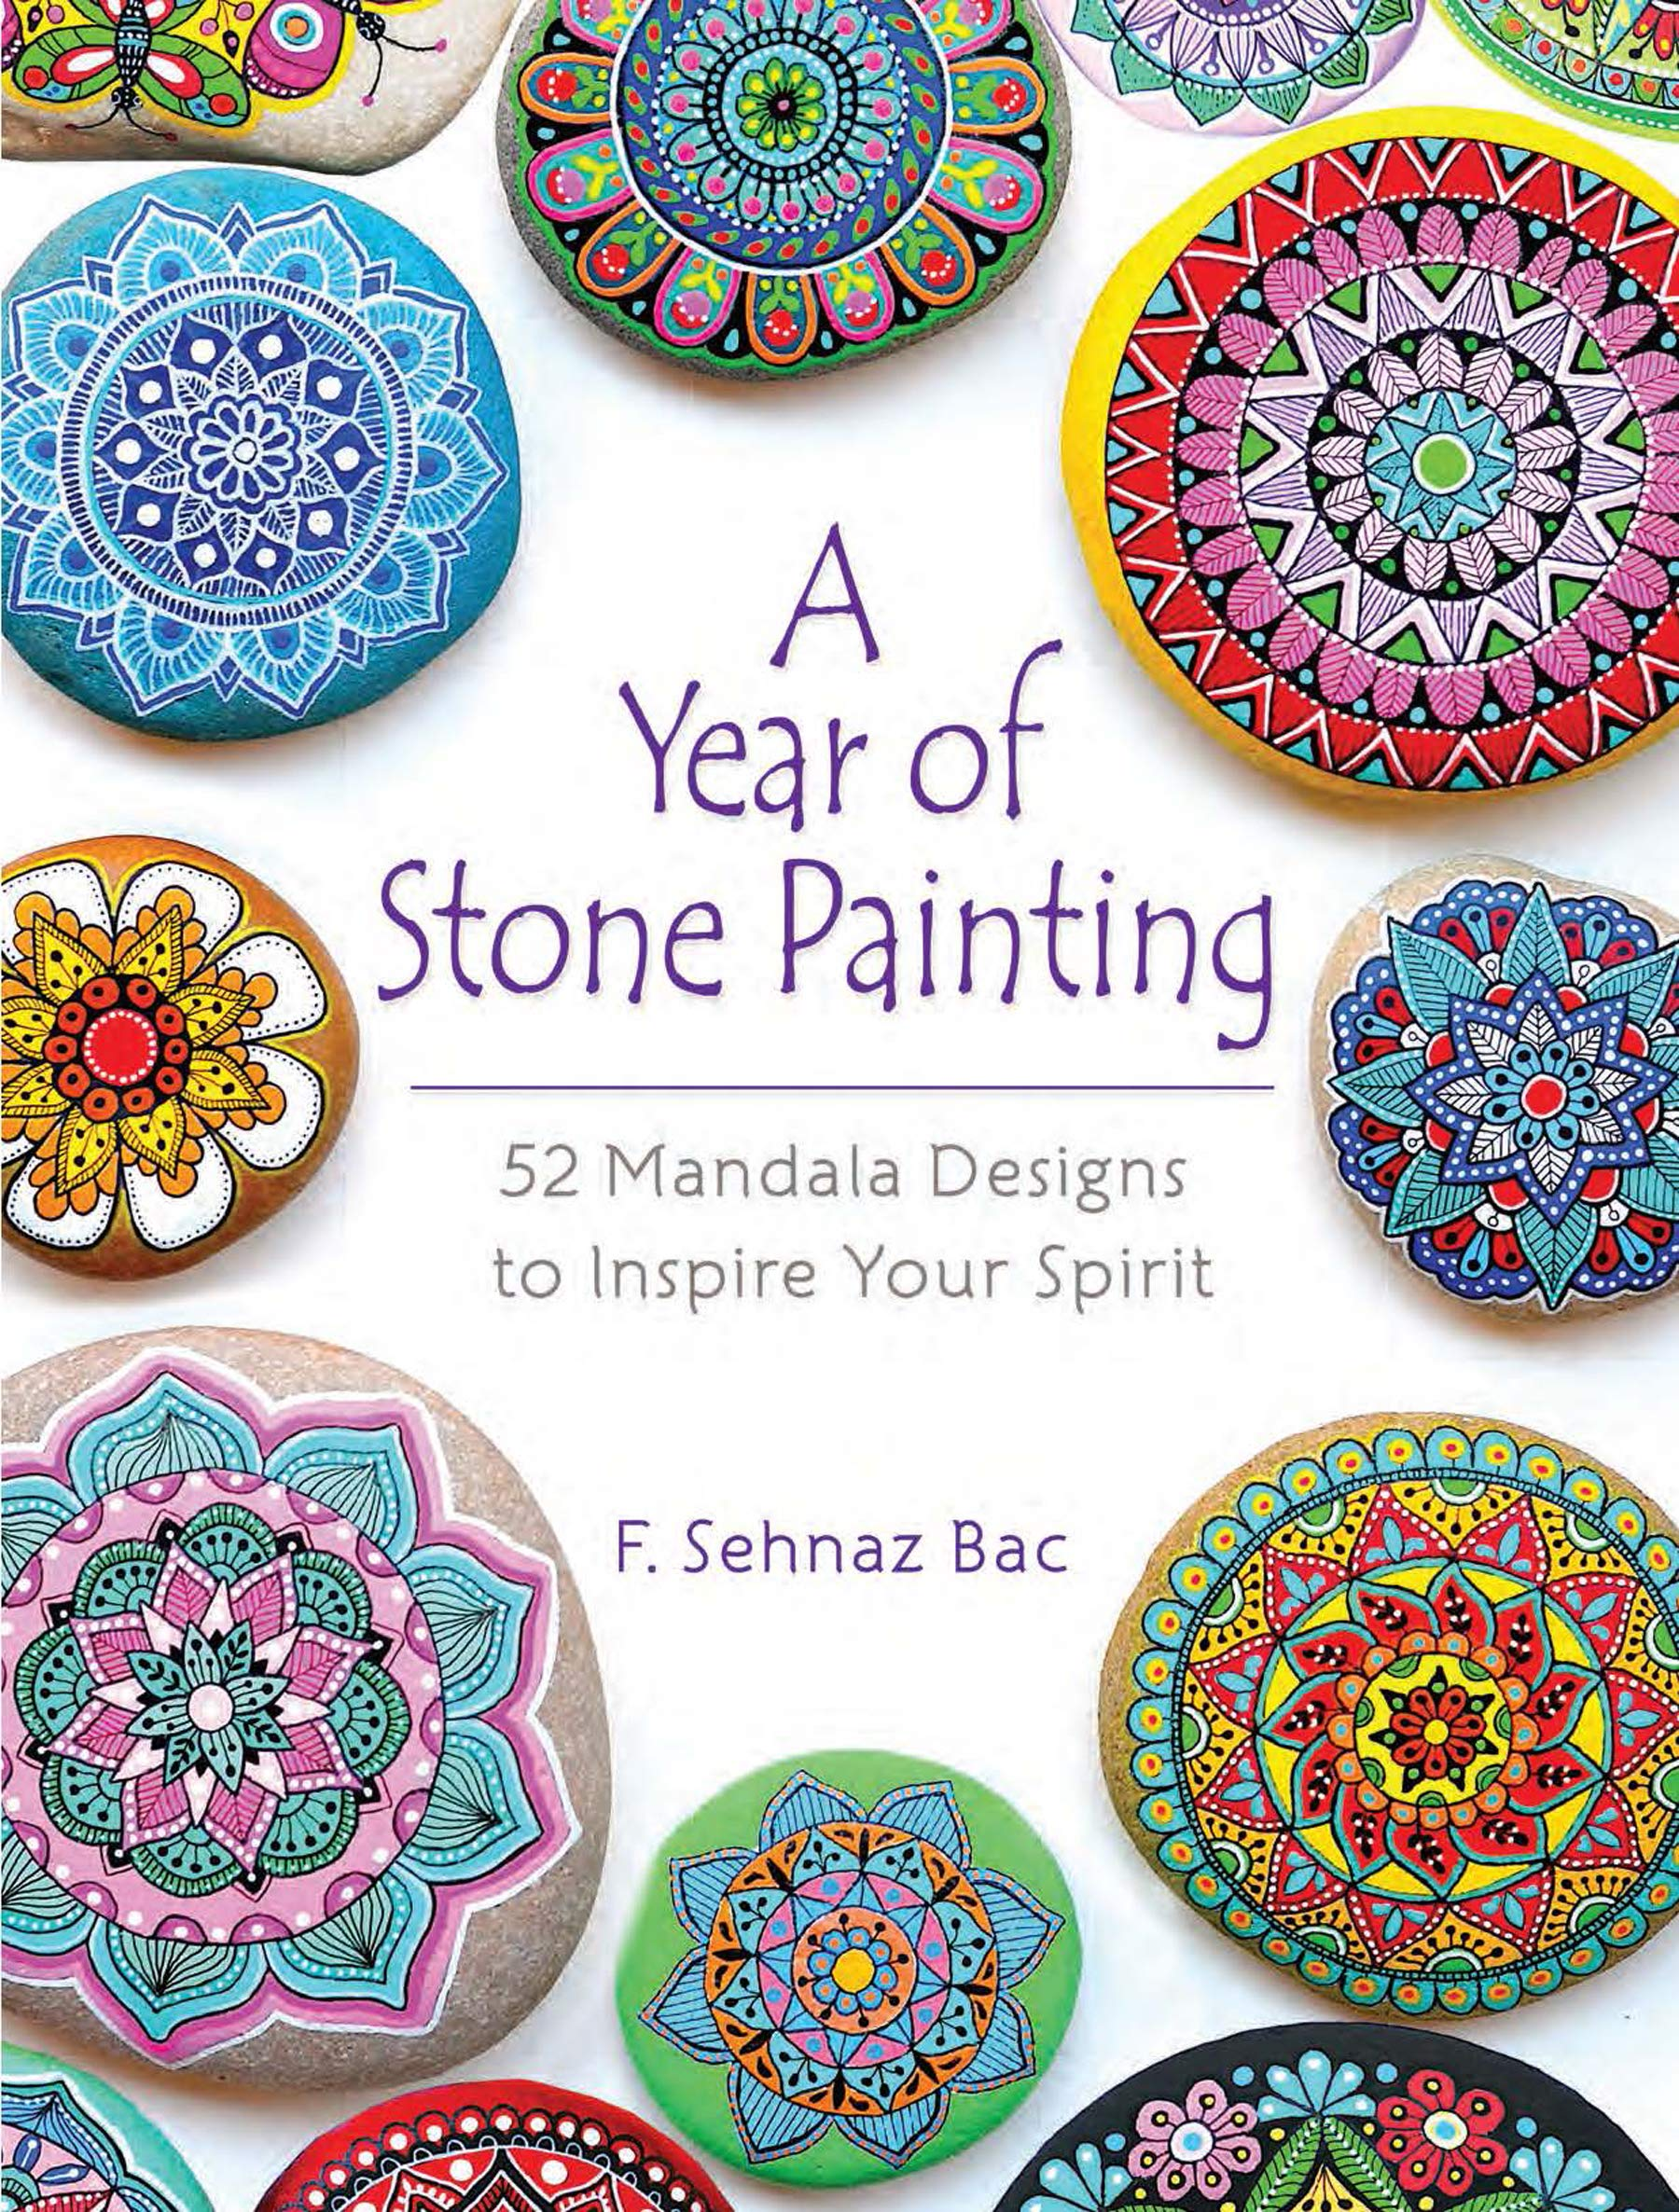 A Year Of Stone Painting 52 Mandala Designs To Inspire Your Spirit Bac F Sehnaz 9780486828527 Amazon Com Books